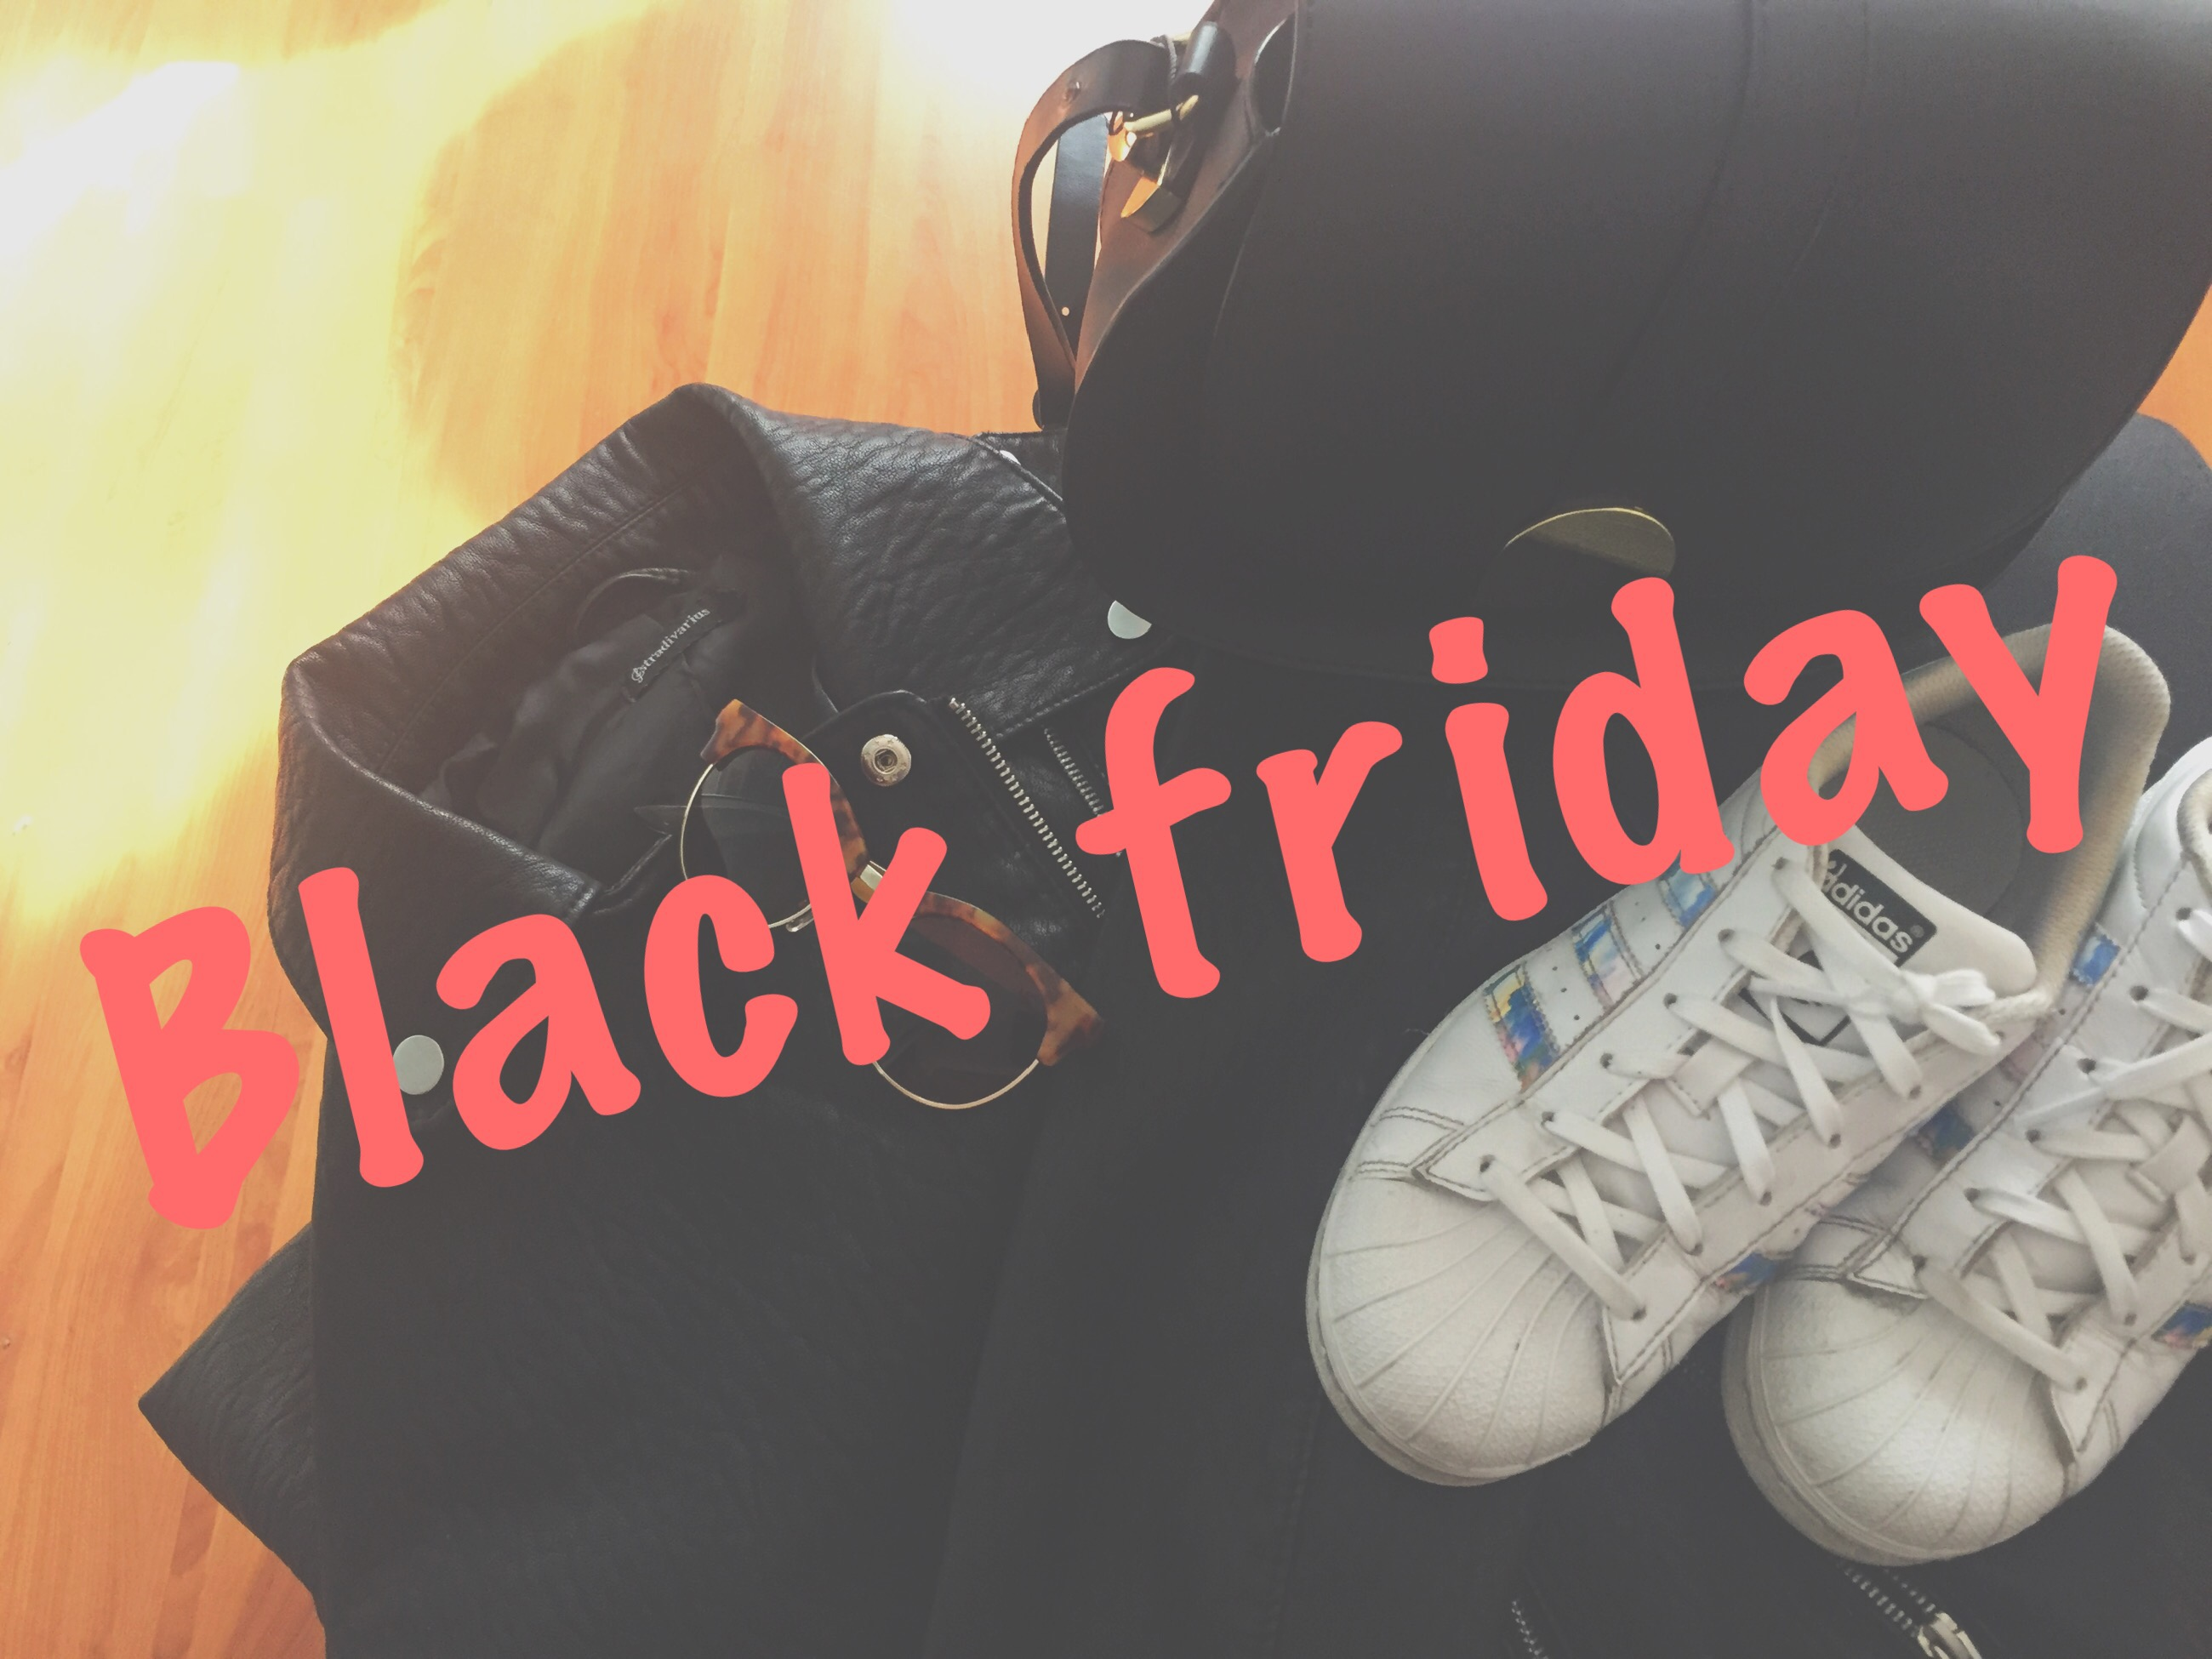 Friday is the new black